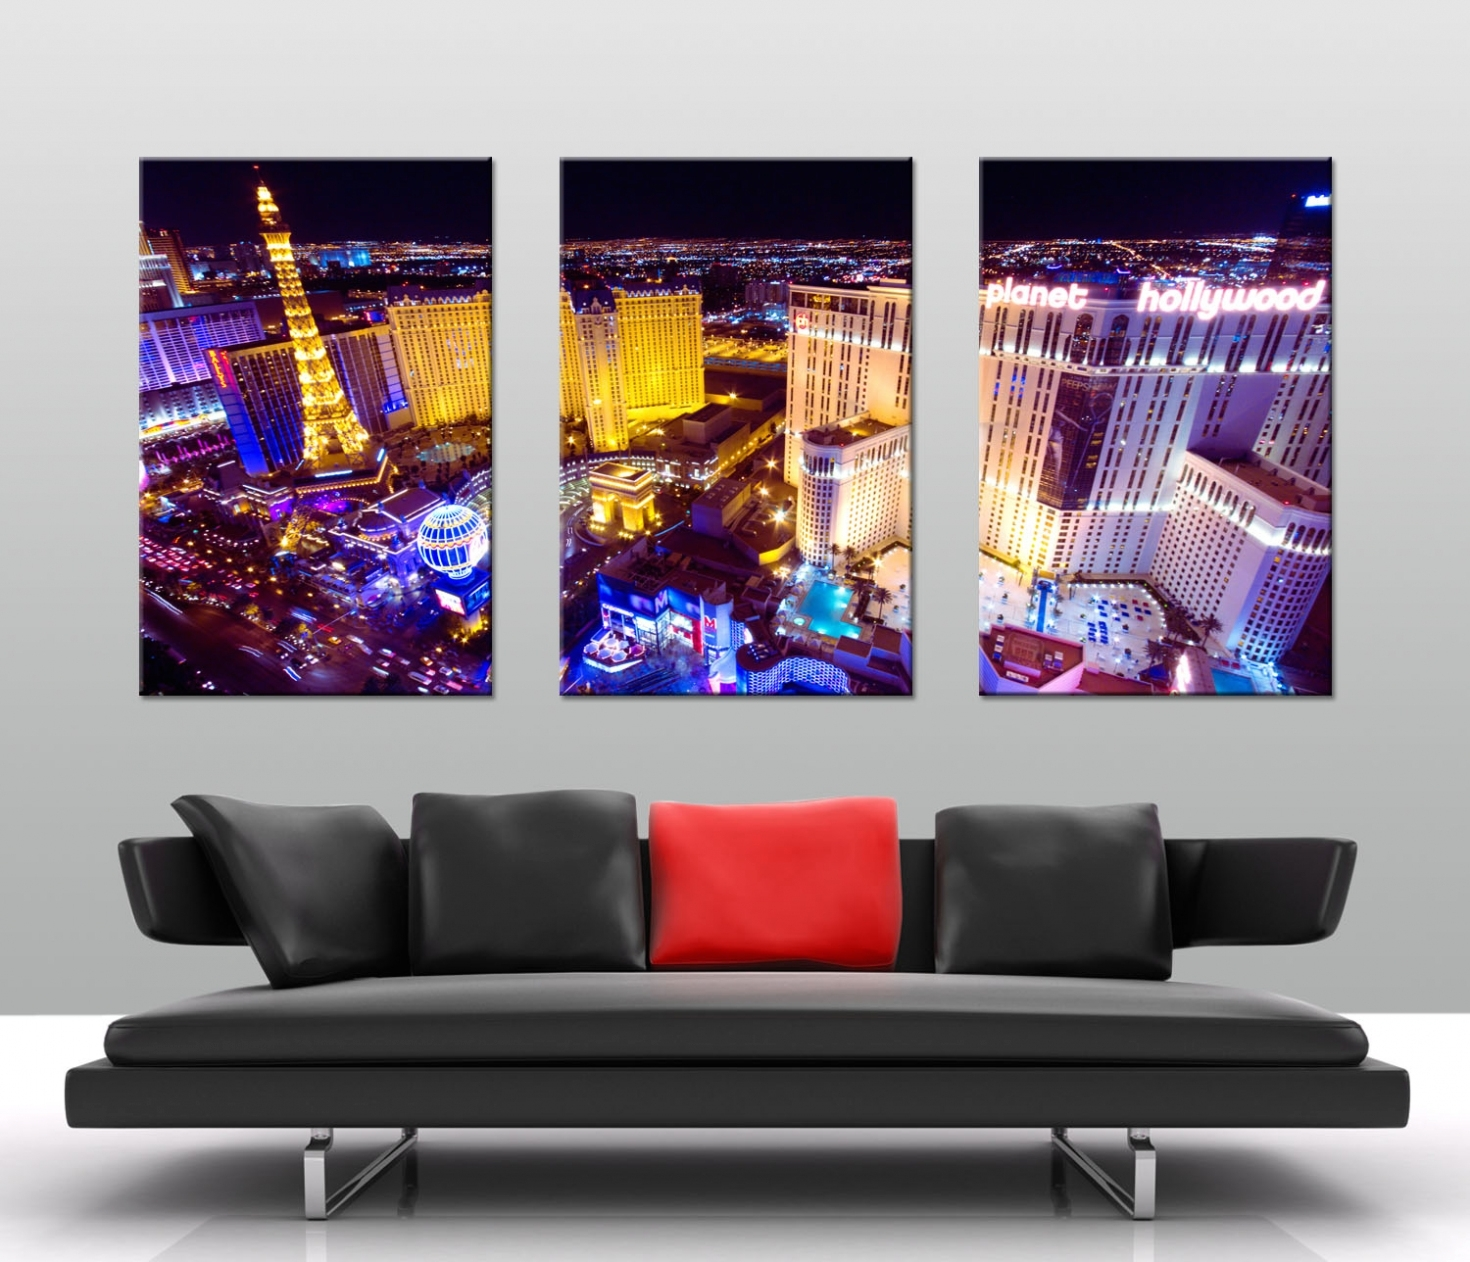 Decoration: Planet Hollywood Las Vegas Split Canvas In Admirable 3 Regarding 2018 Las Vegas Canvas Wall Art (Gallery 1 of 15)